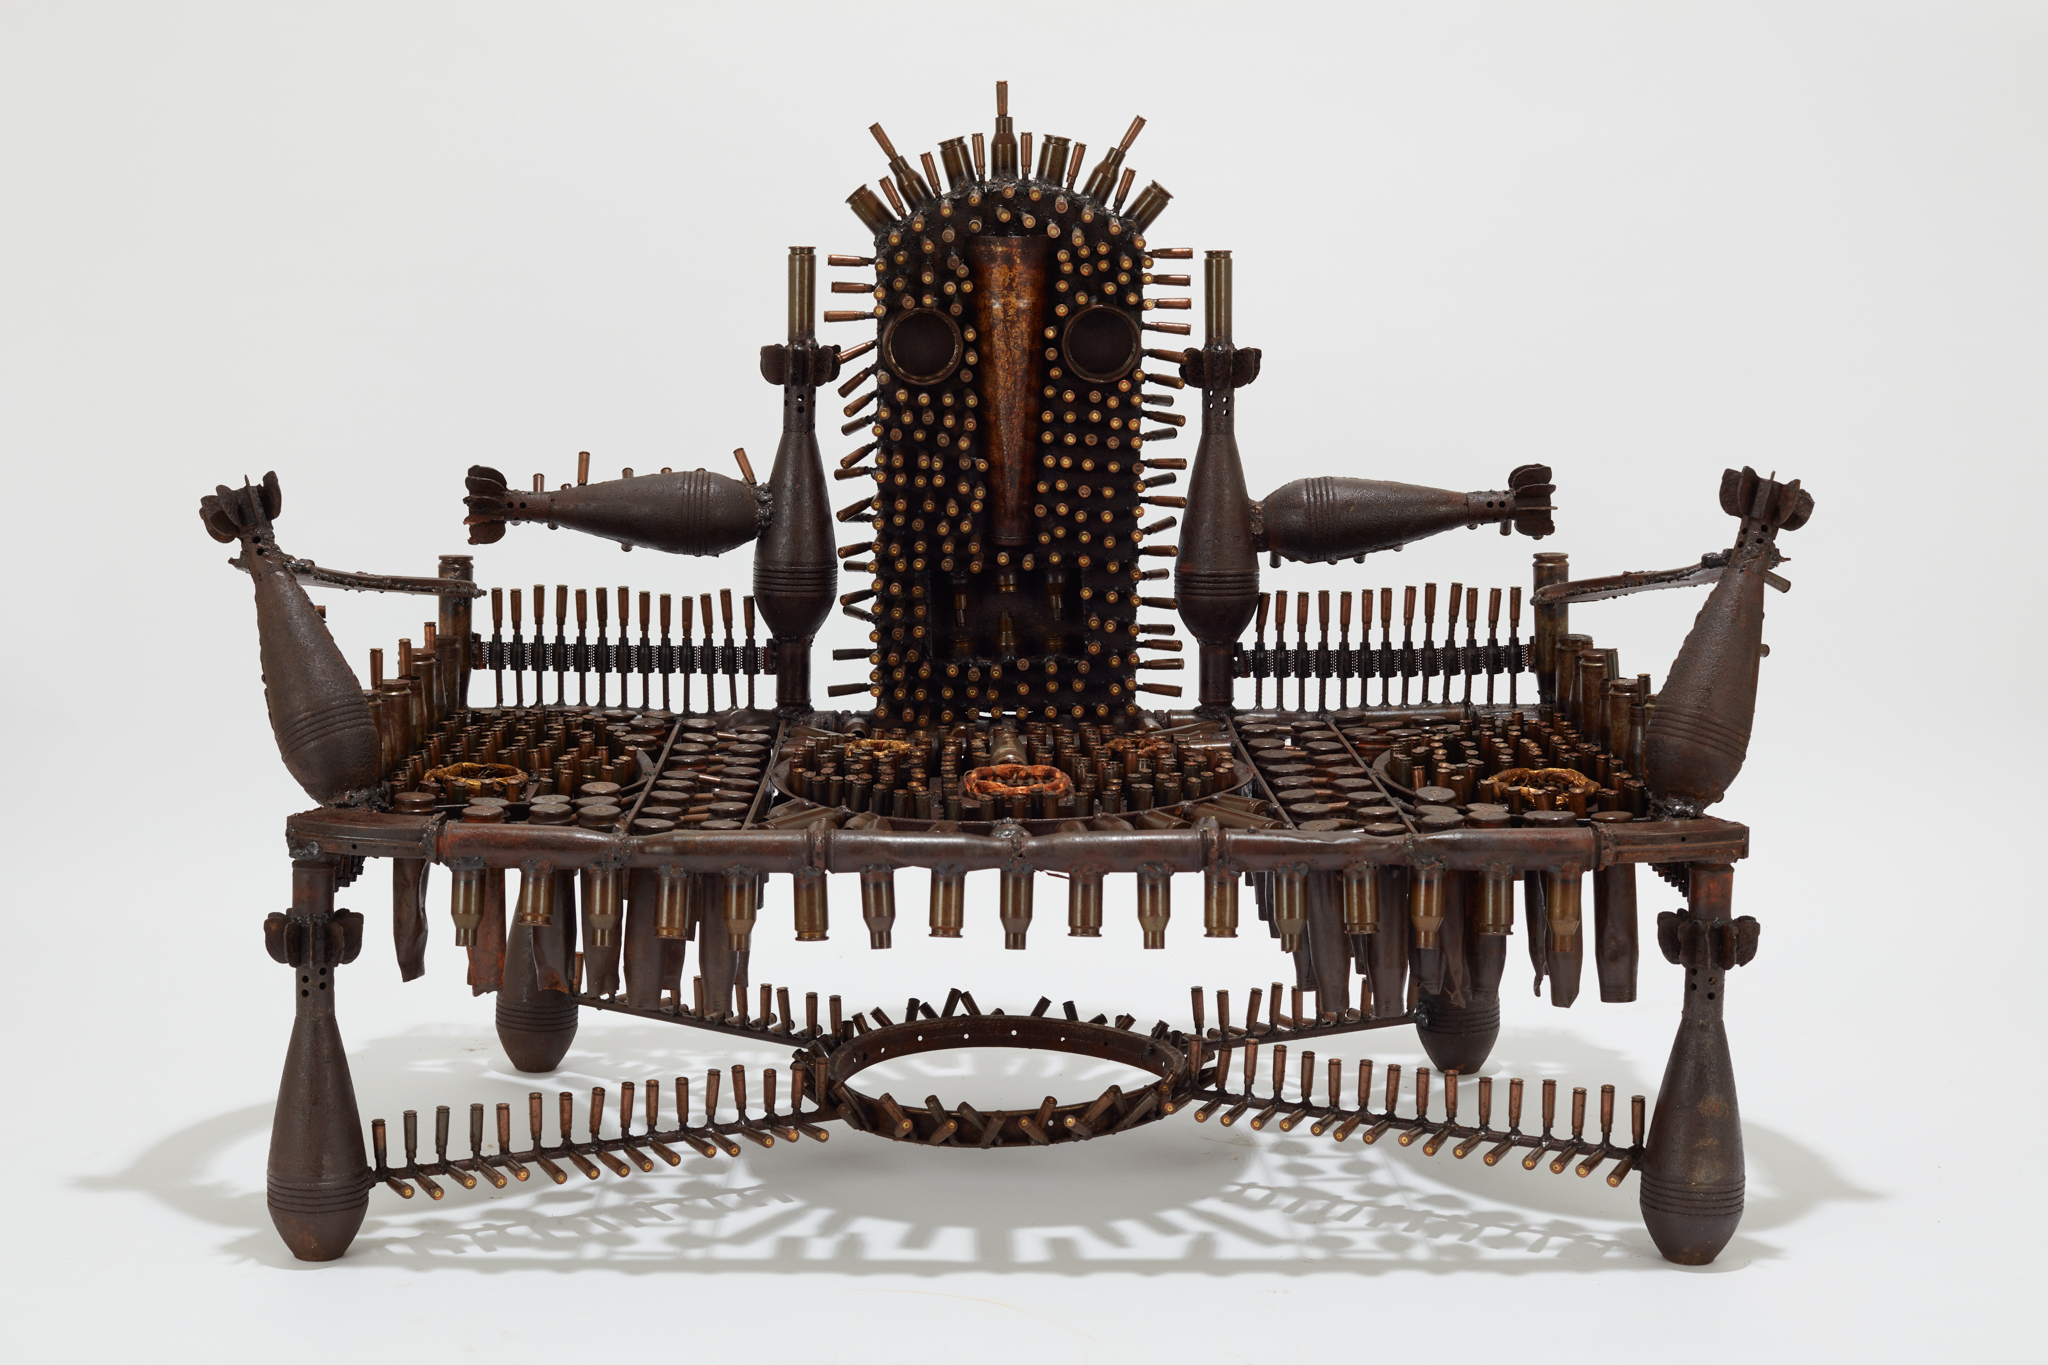 Goncalo Mabunda, Untitled (throne), 2019, Courtesy of Jack Bell Gallery